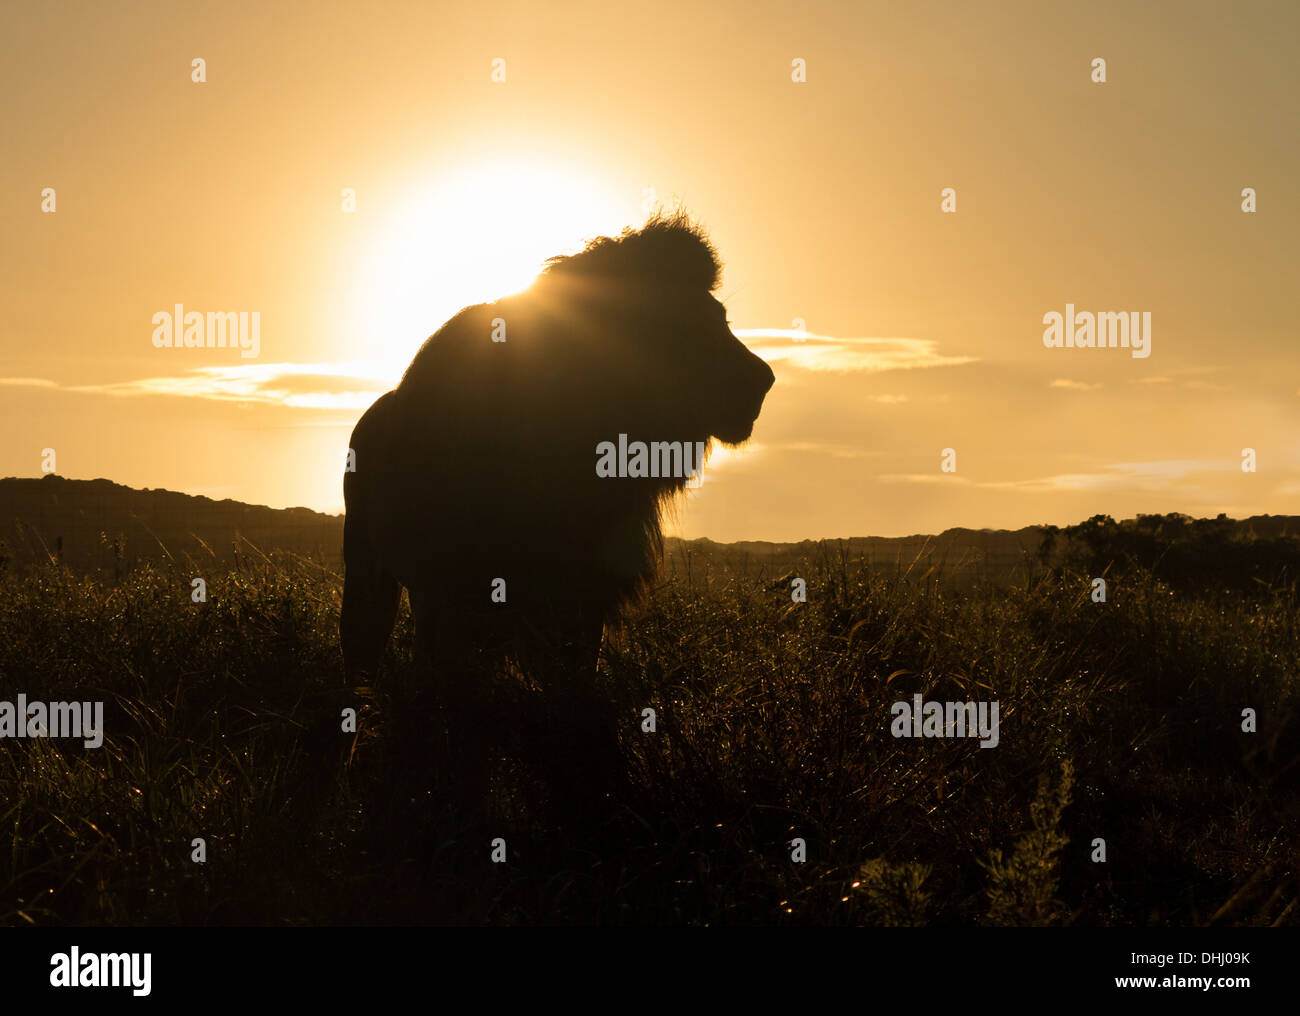 Silhouette of an old large male lion in the savannah in South Africa at sunset - Stock Image